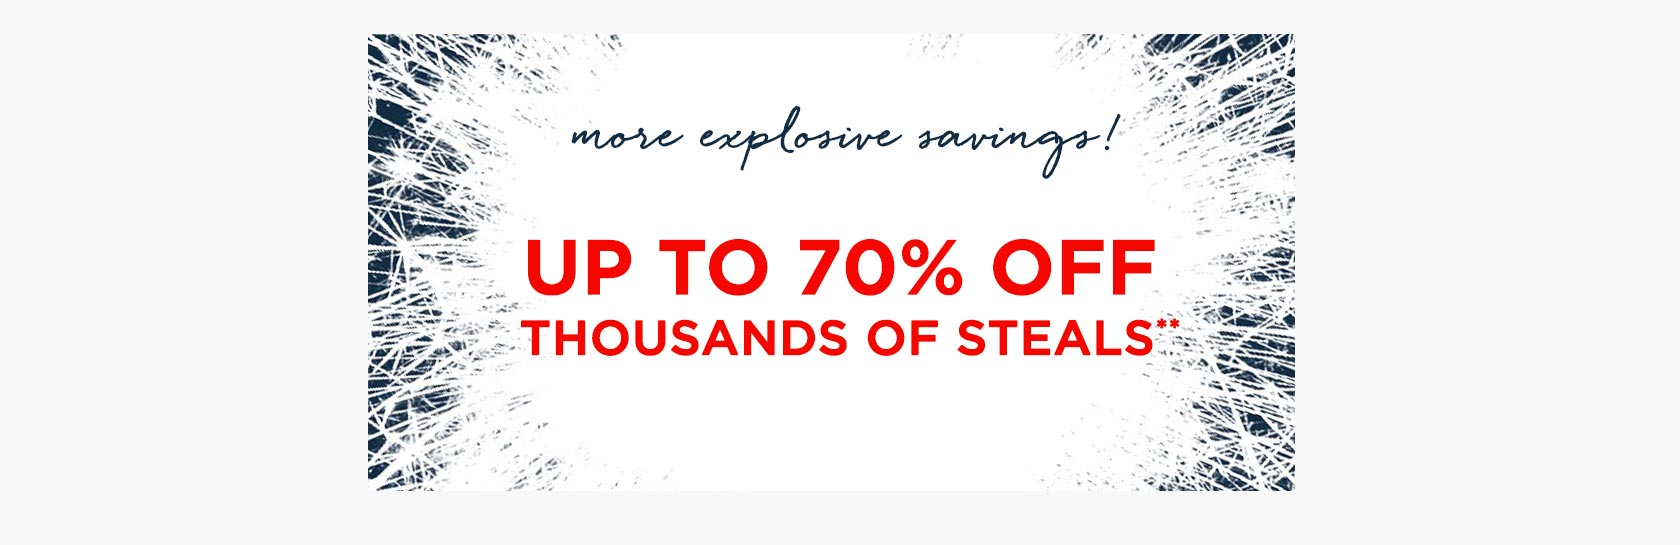 More Explosive Savings! Up To 70 Percent Off Thousands Of Steals